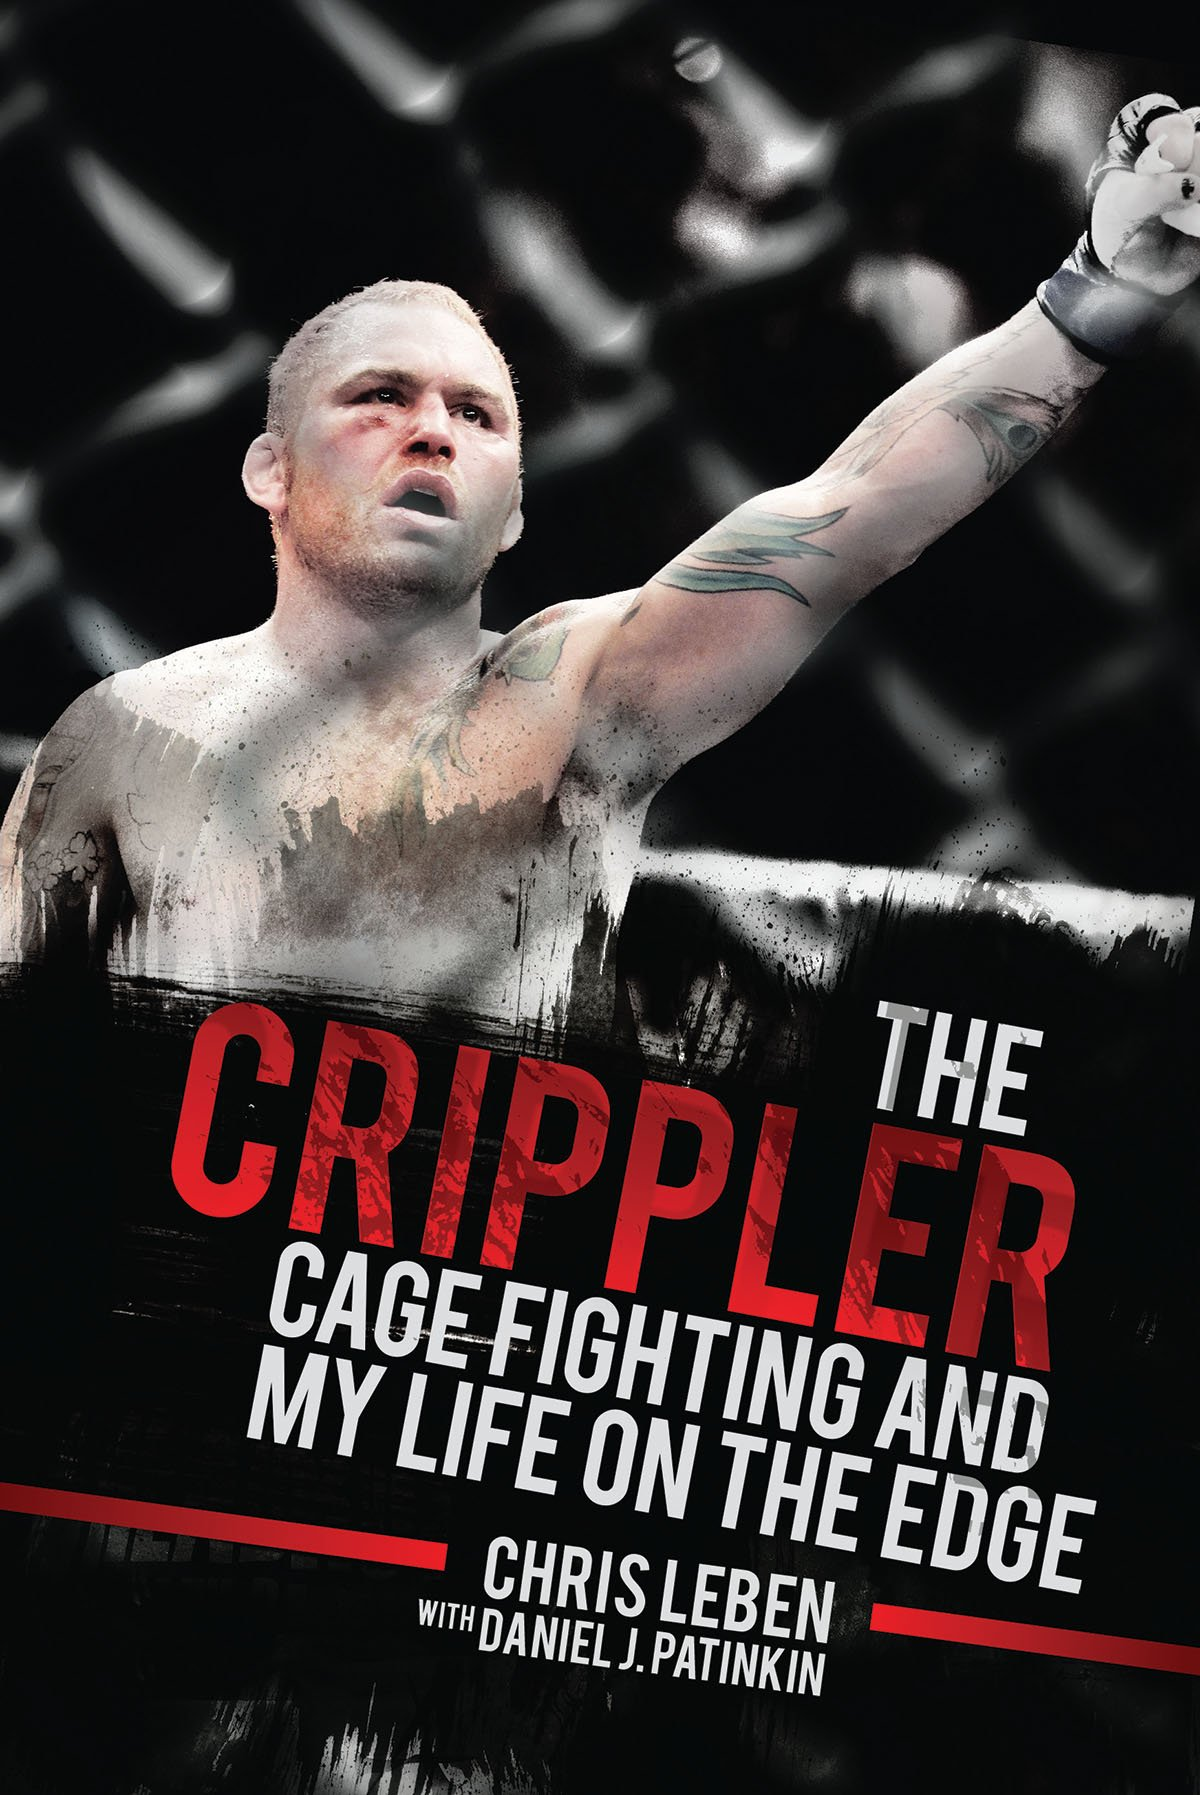 The Crippler: Cage Fighting and My Life on the Edge pdf epub